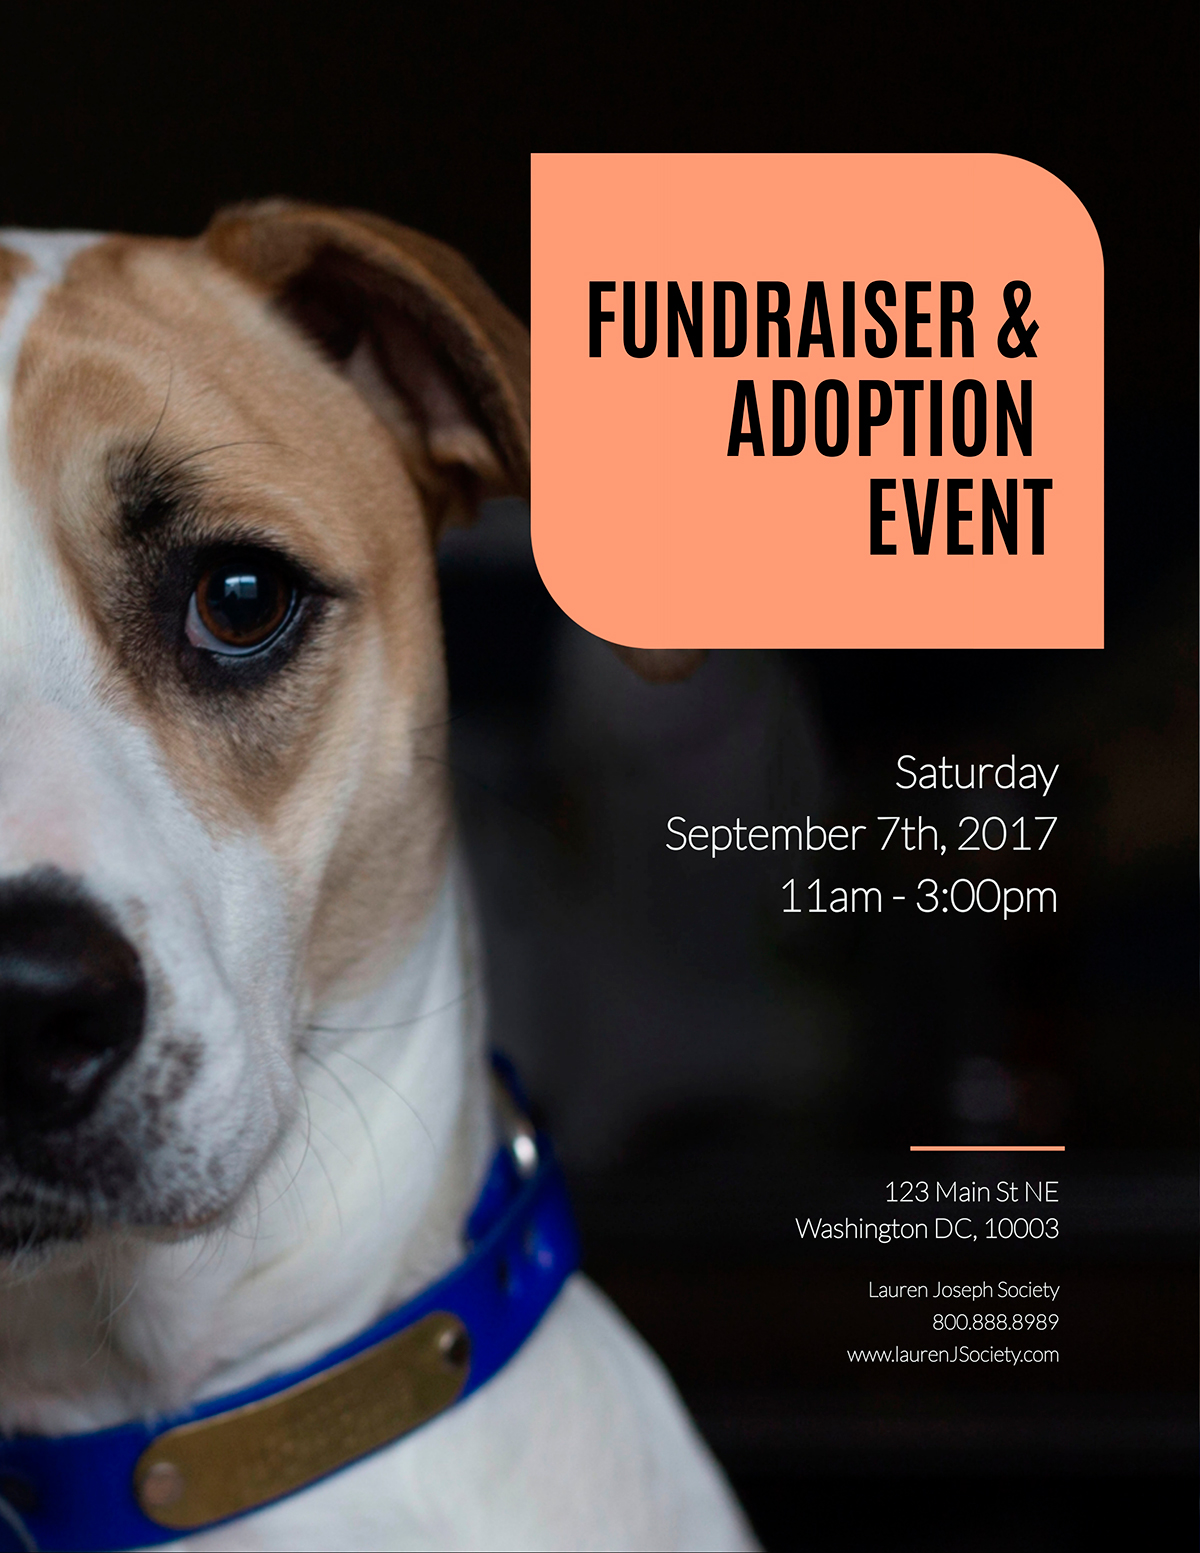 Pet adoption flyer template available in Visme.